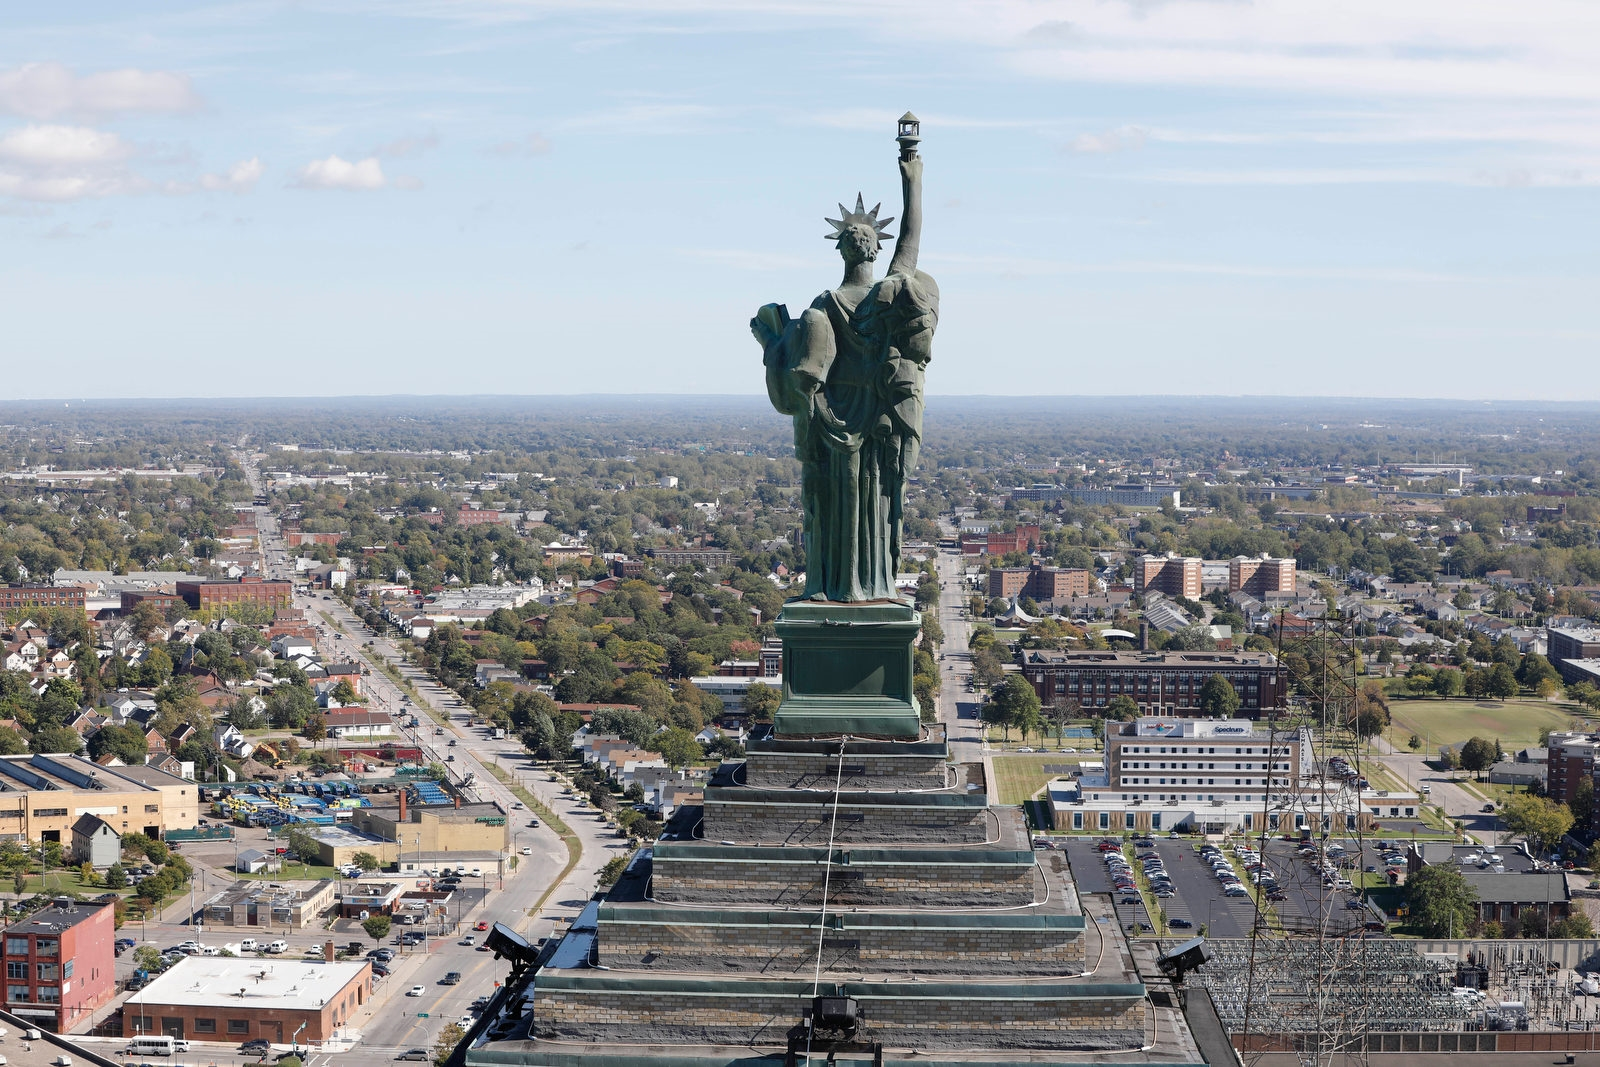 The view of Lady Liberty atop the eastern tower as seen from the western tower.